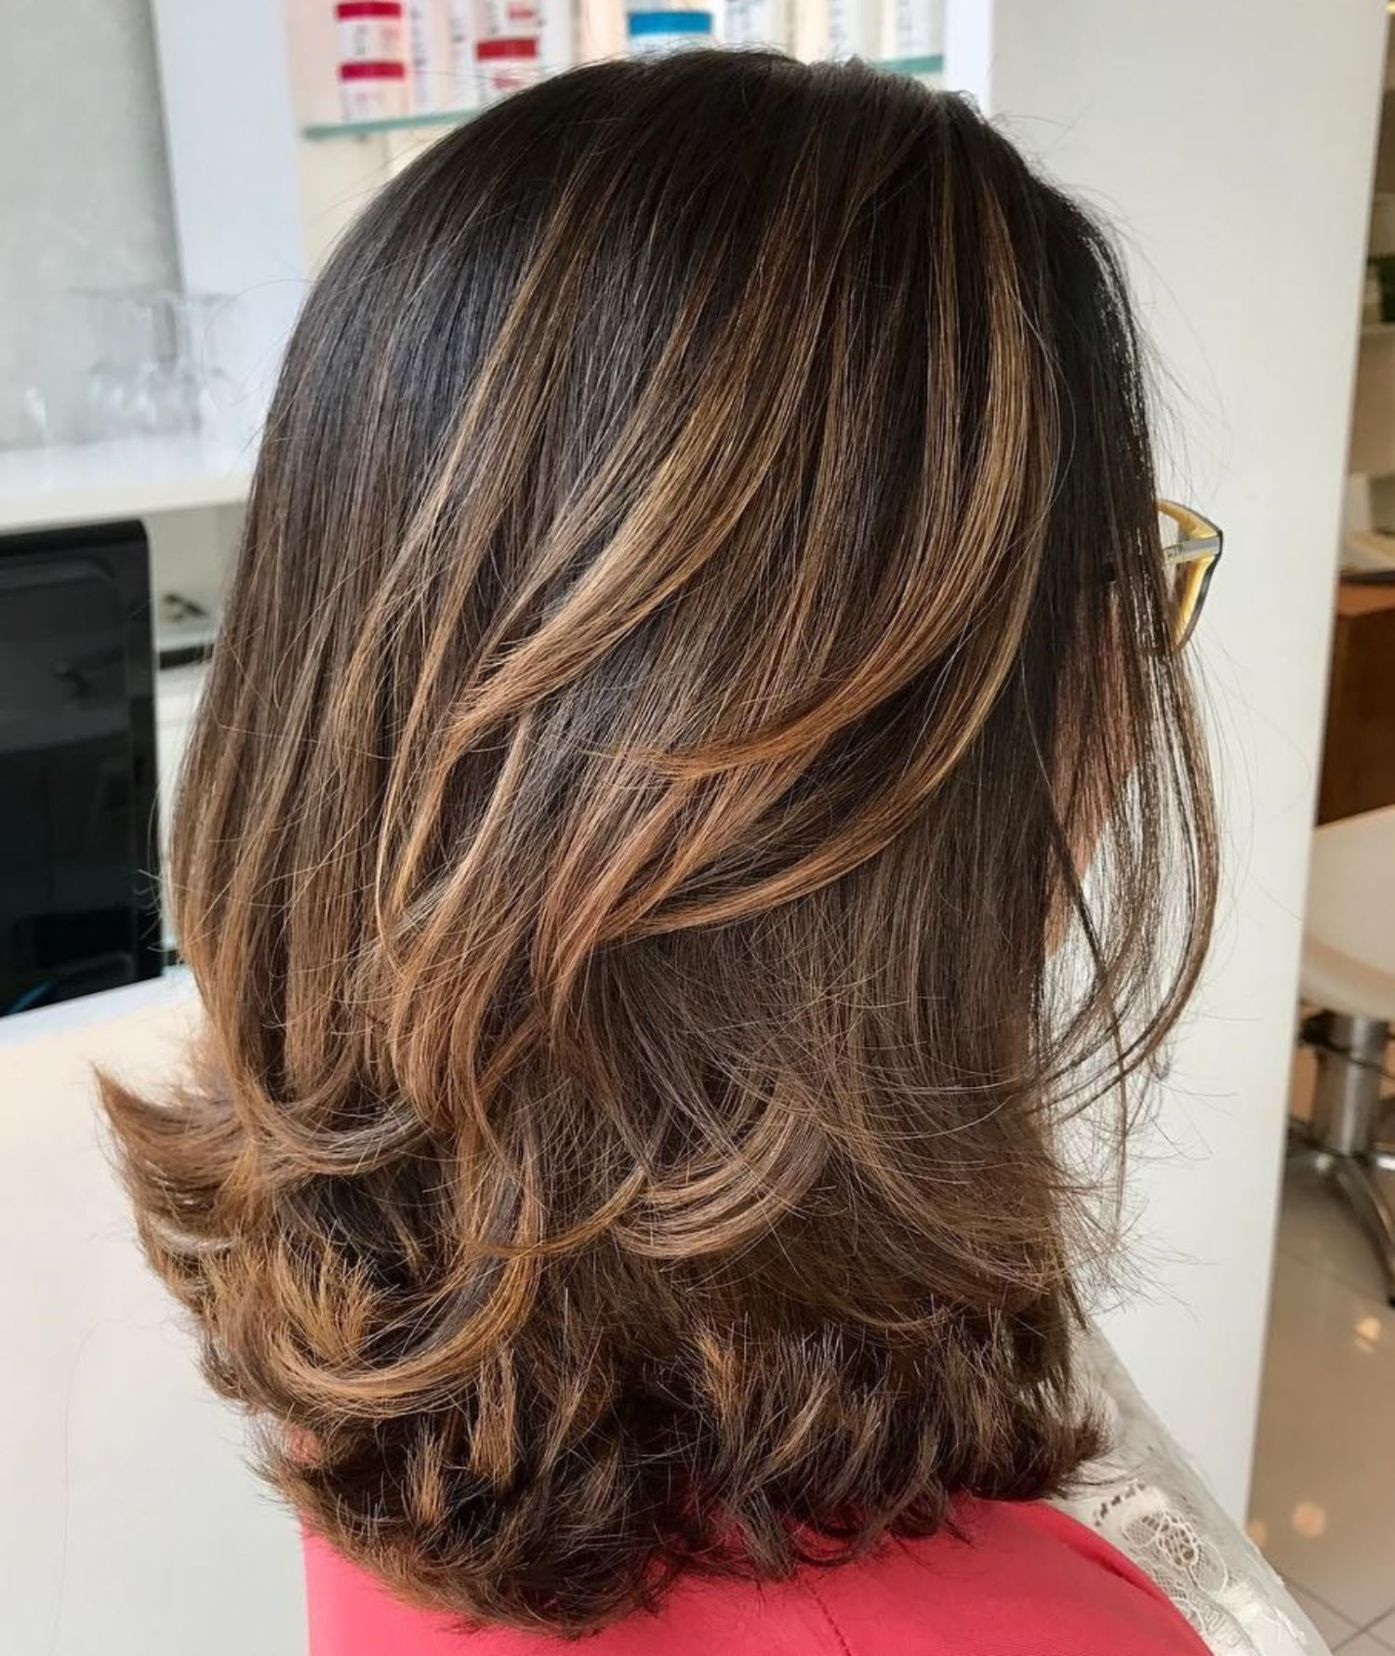 12 Brightest Medium Layered Haircuts to Light You Up  Haircut for